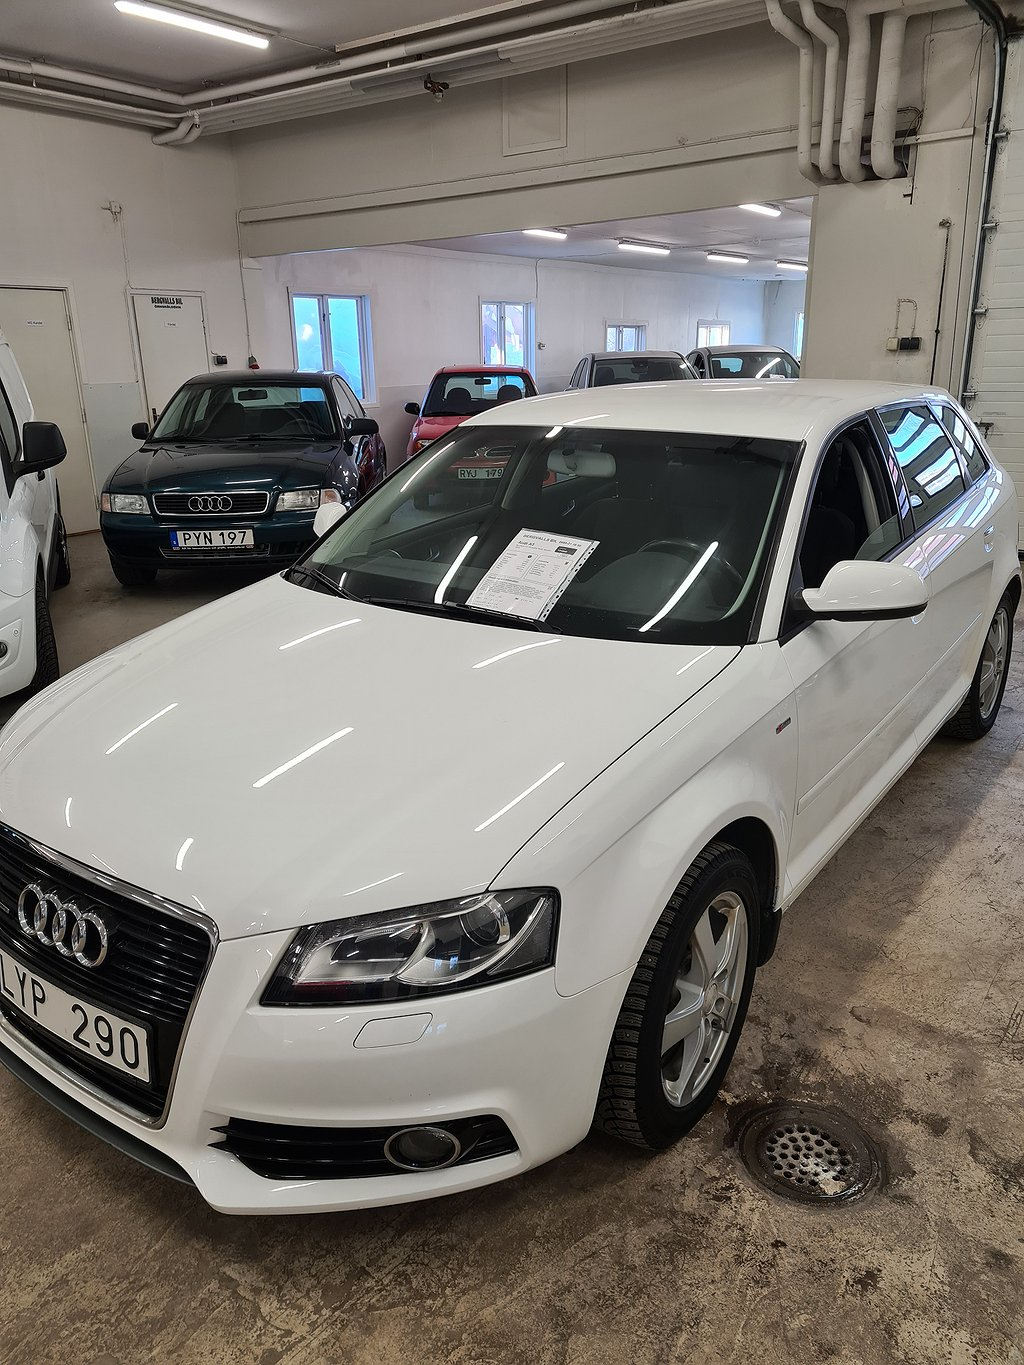 Audi A3 Sportback 2.0 TDI quattro Sport, Attraction 140hk